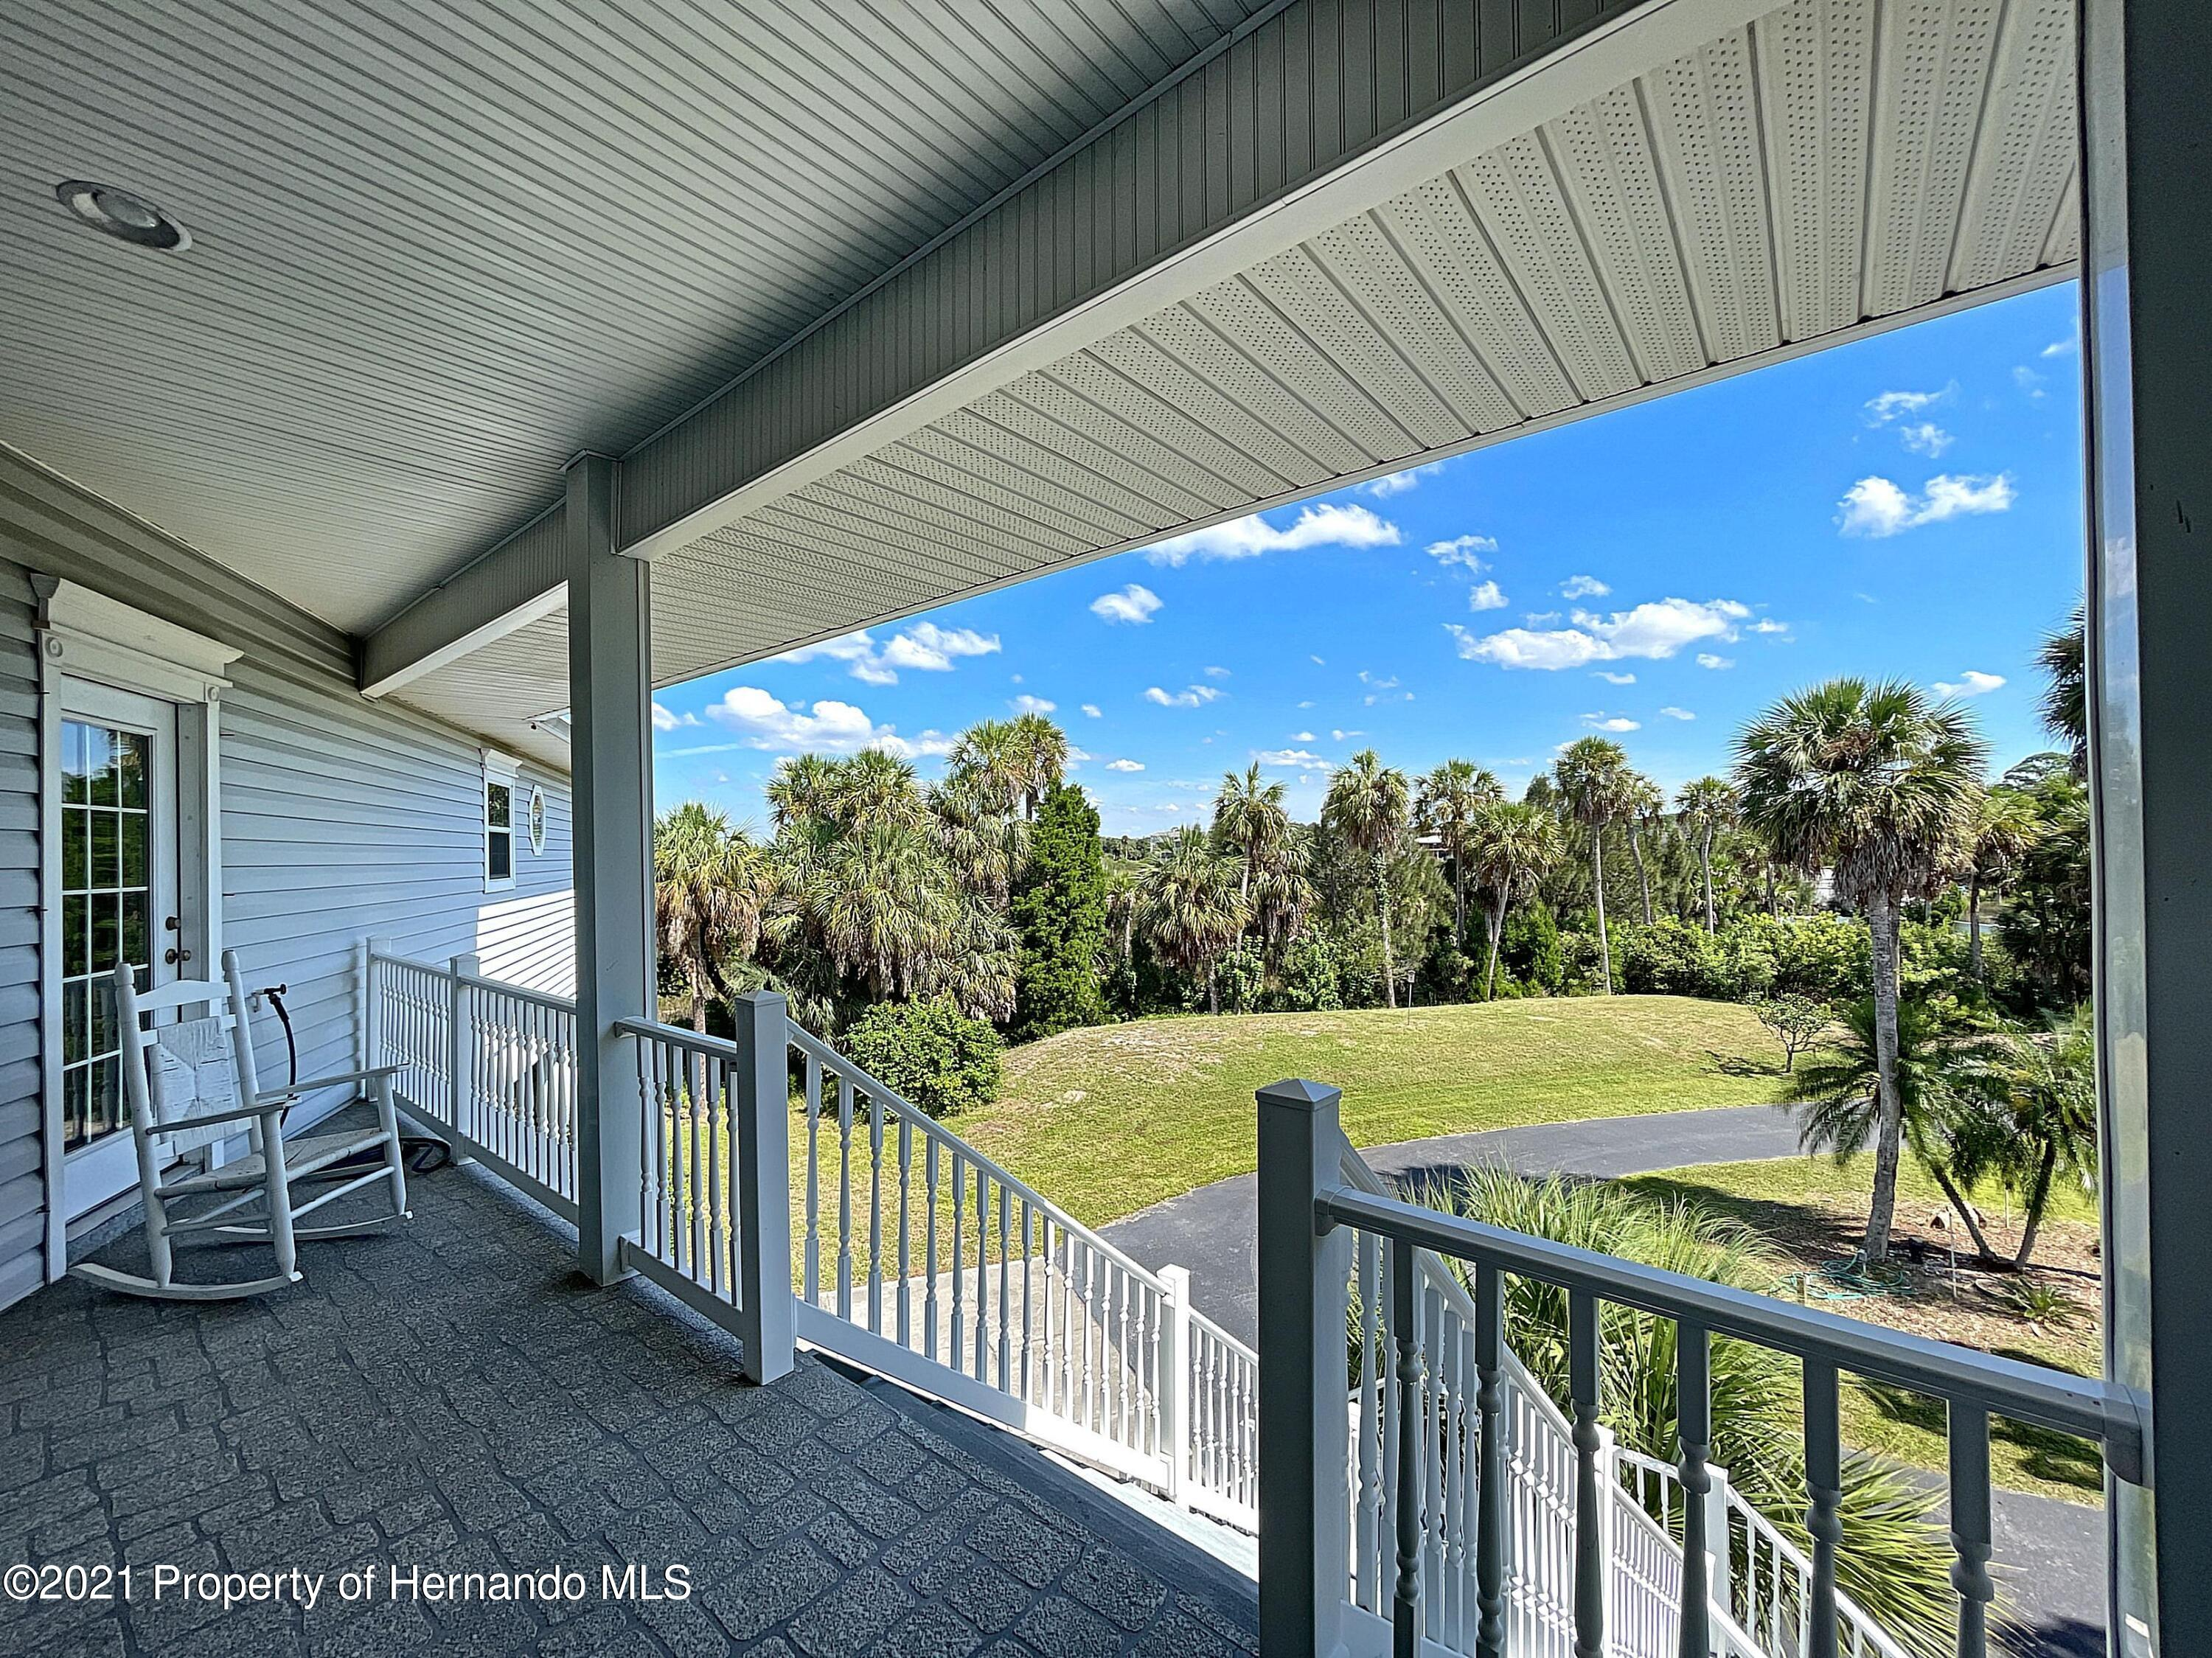 Image 9 of 101 For 1091 Osowaw Boulevard